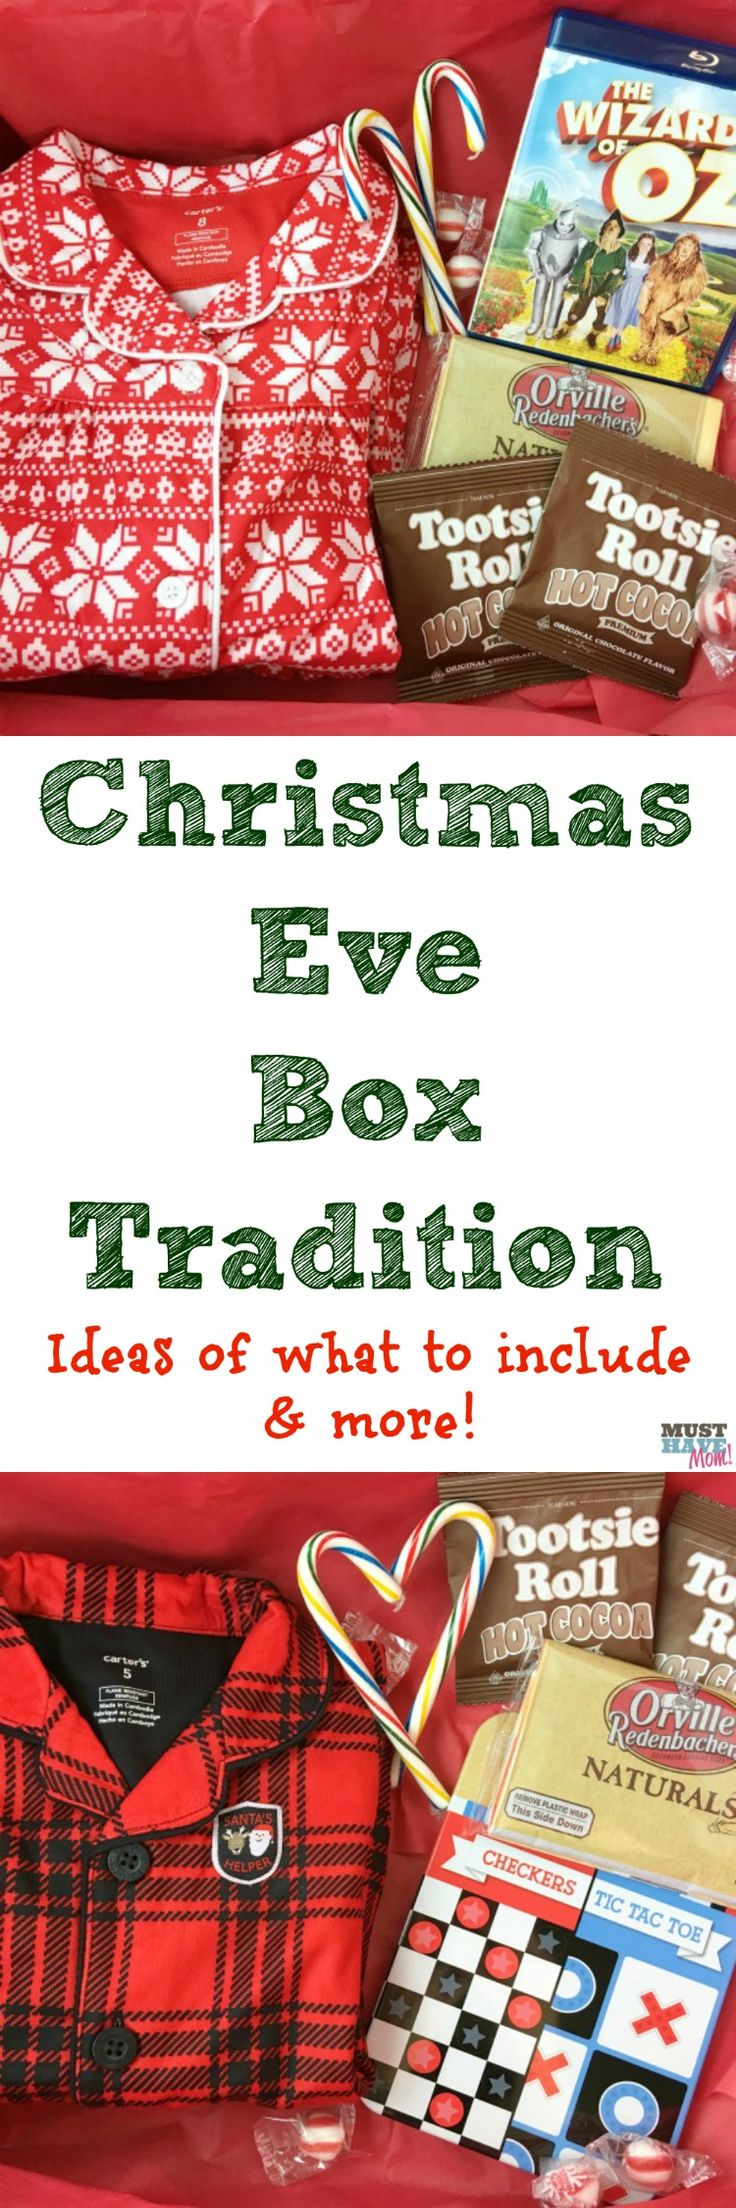 Awesome Christmas Traditions idea! Kids Christmas Eve boxes to open on the night before Christmas! List of what to include and ideas!